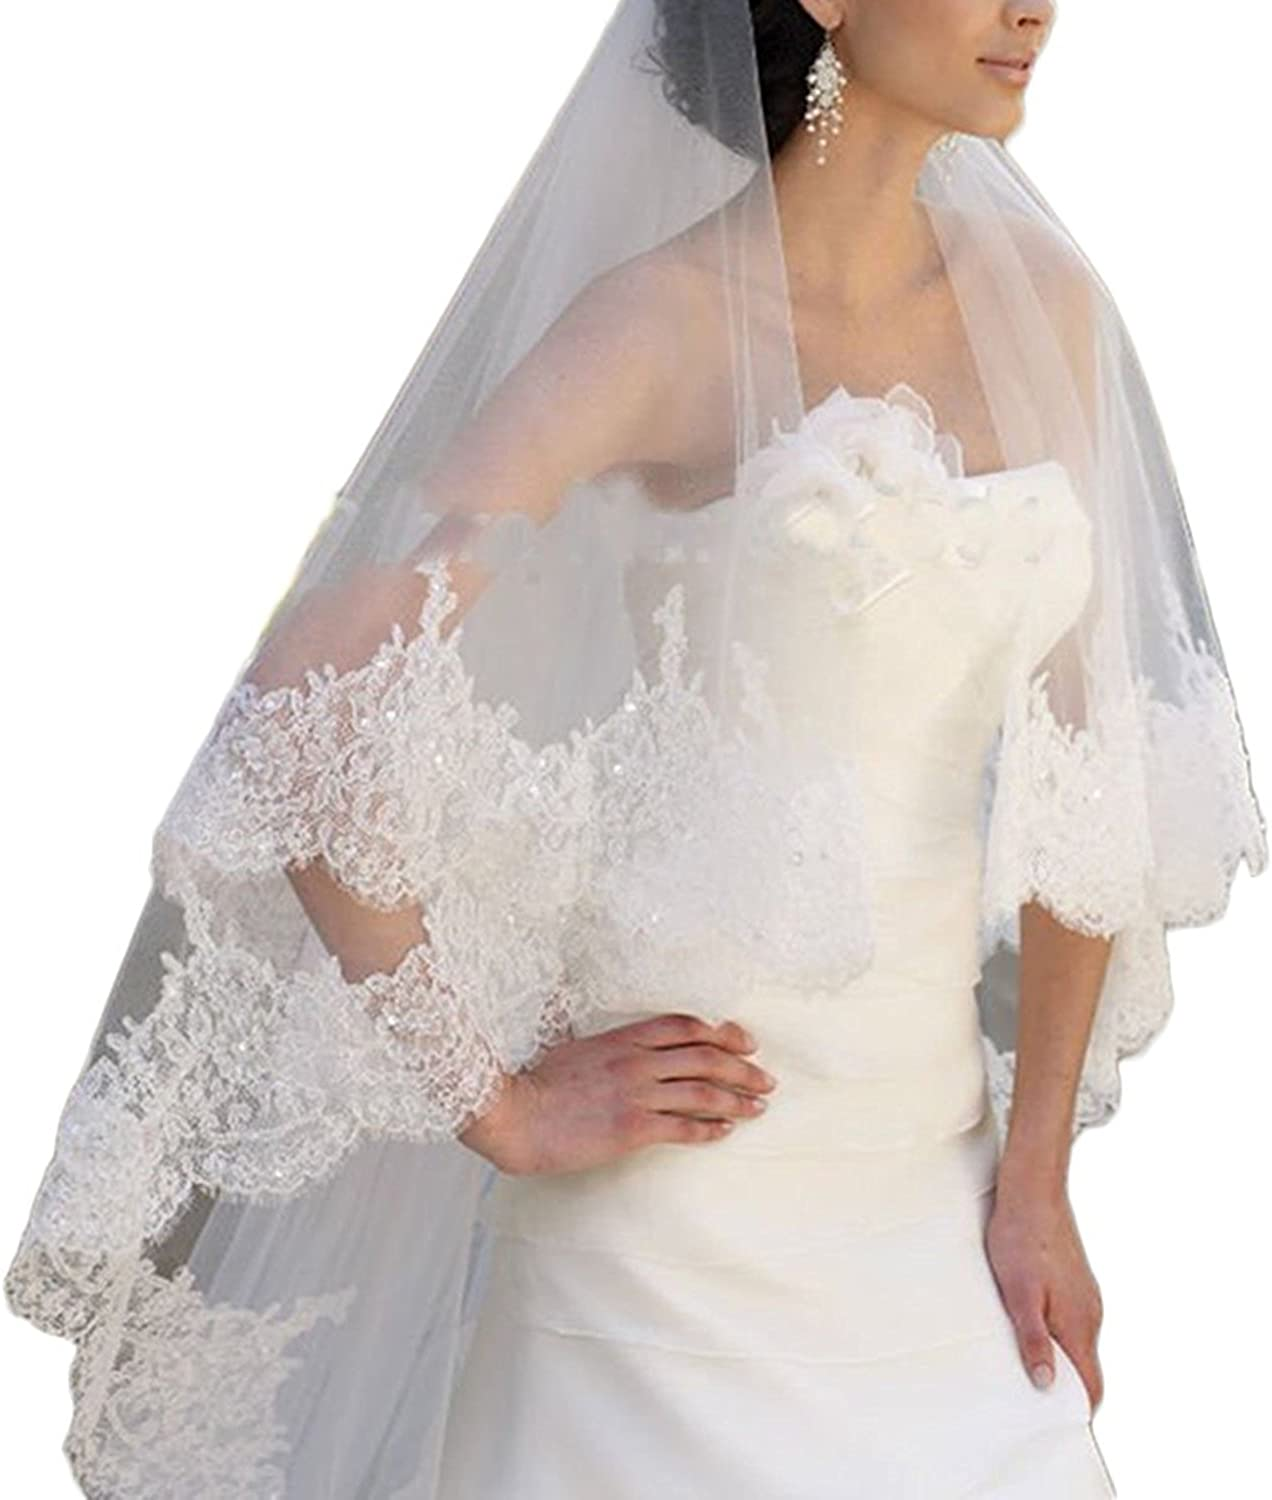 JQLD Sequin Lace Wedding Veils 3M Cathedral Long Tulle Brides 2T Veil with Comb